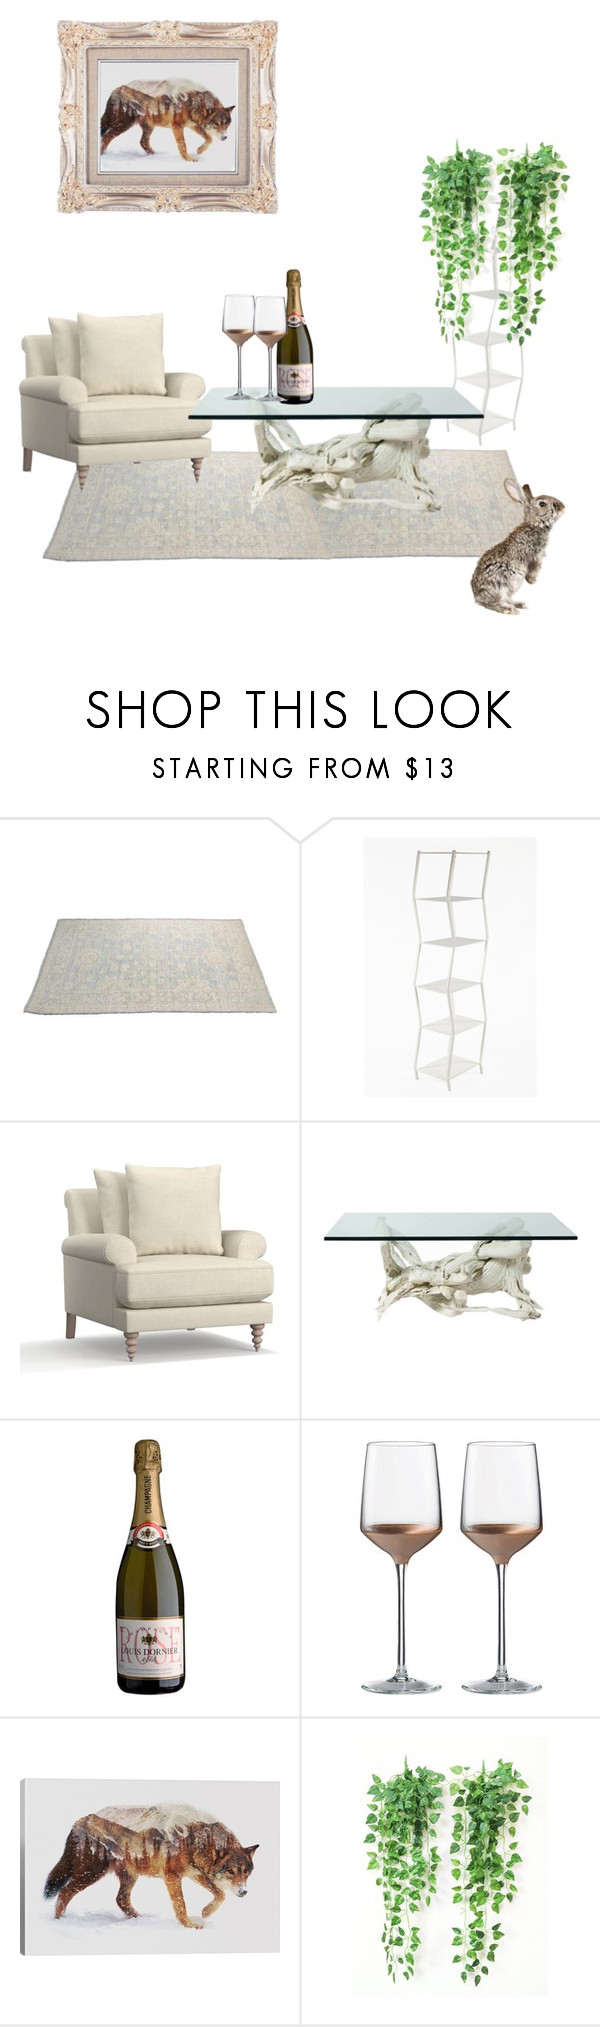 """rabby"" by combinestuff ❤ liked on Polyvore featuring Pottery Barn, Wedgwood and iCanvas"